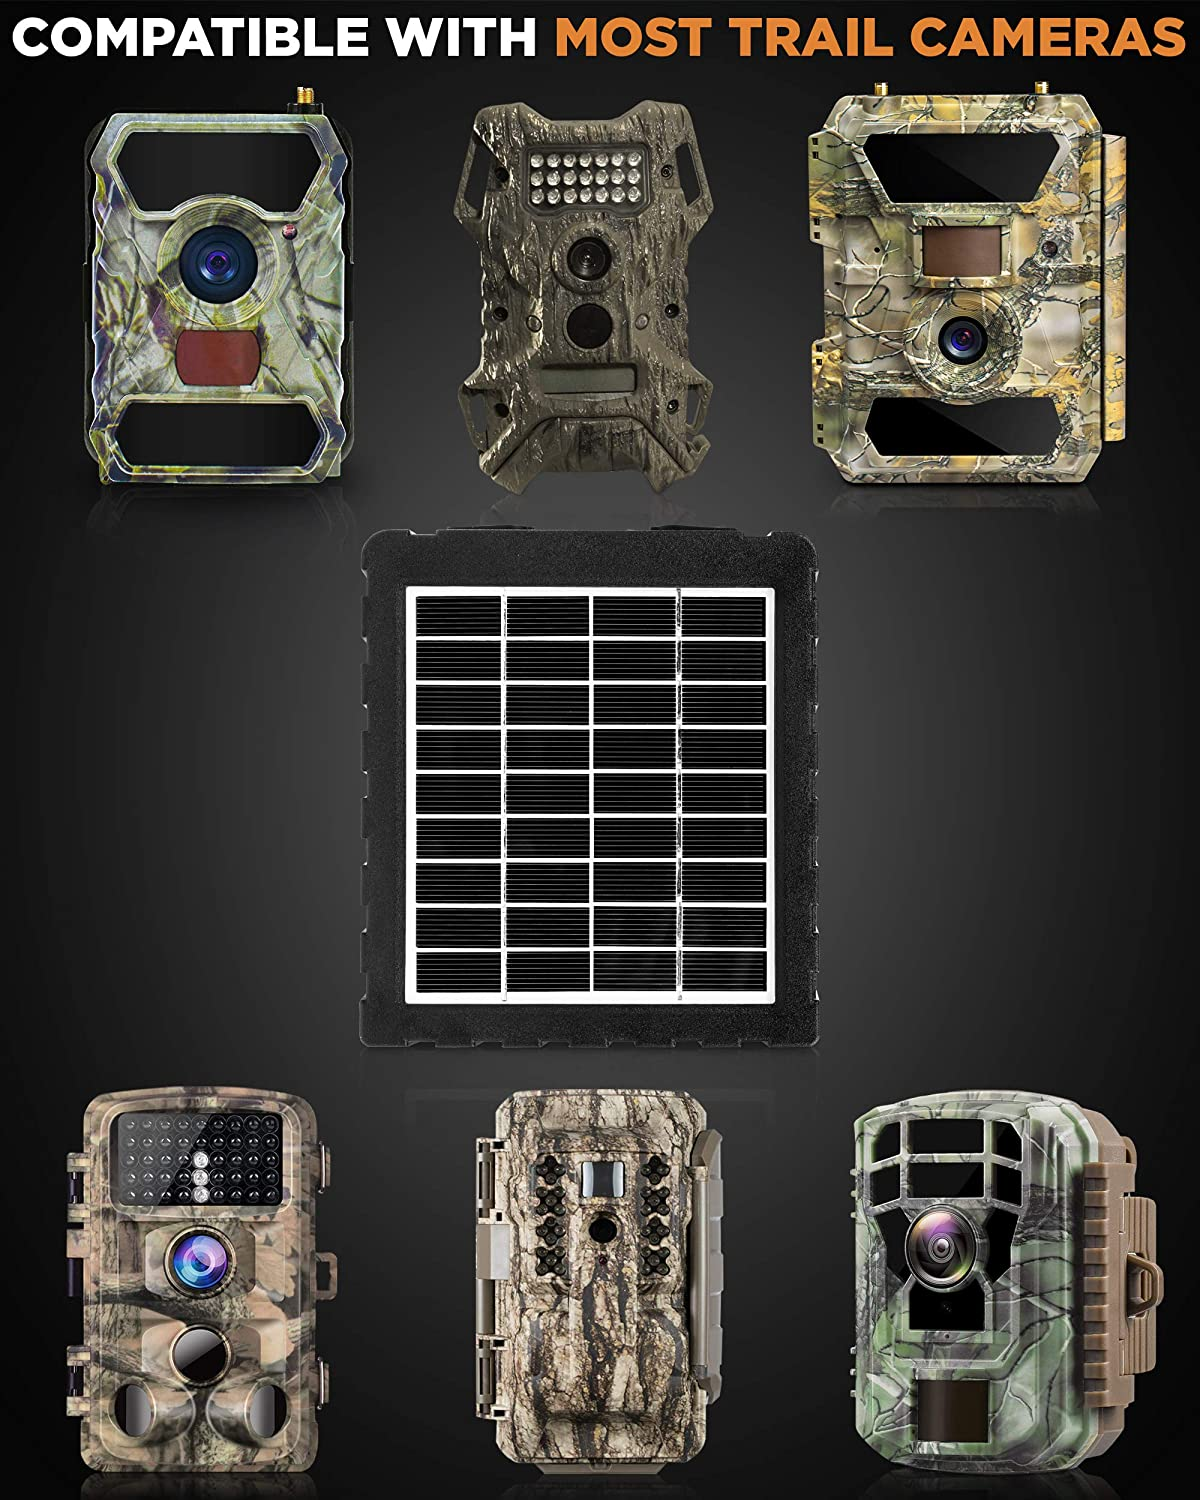 GlassRaven 3G - Cellular IR & Full-HD Game Camera